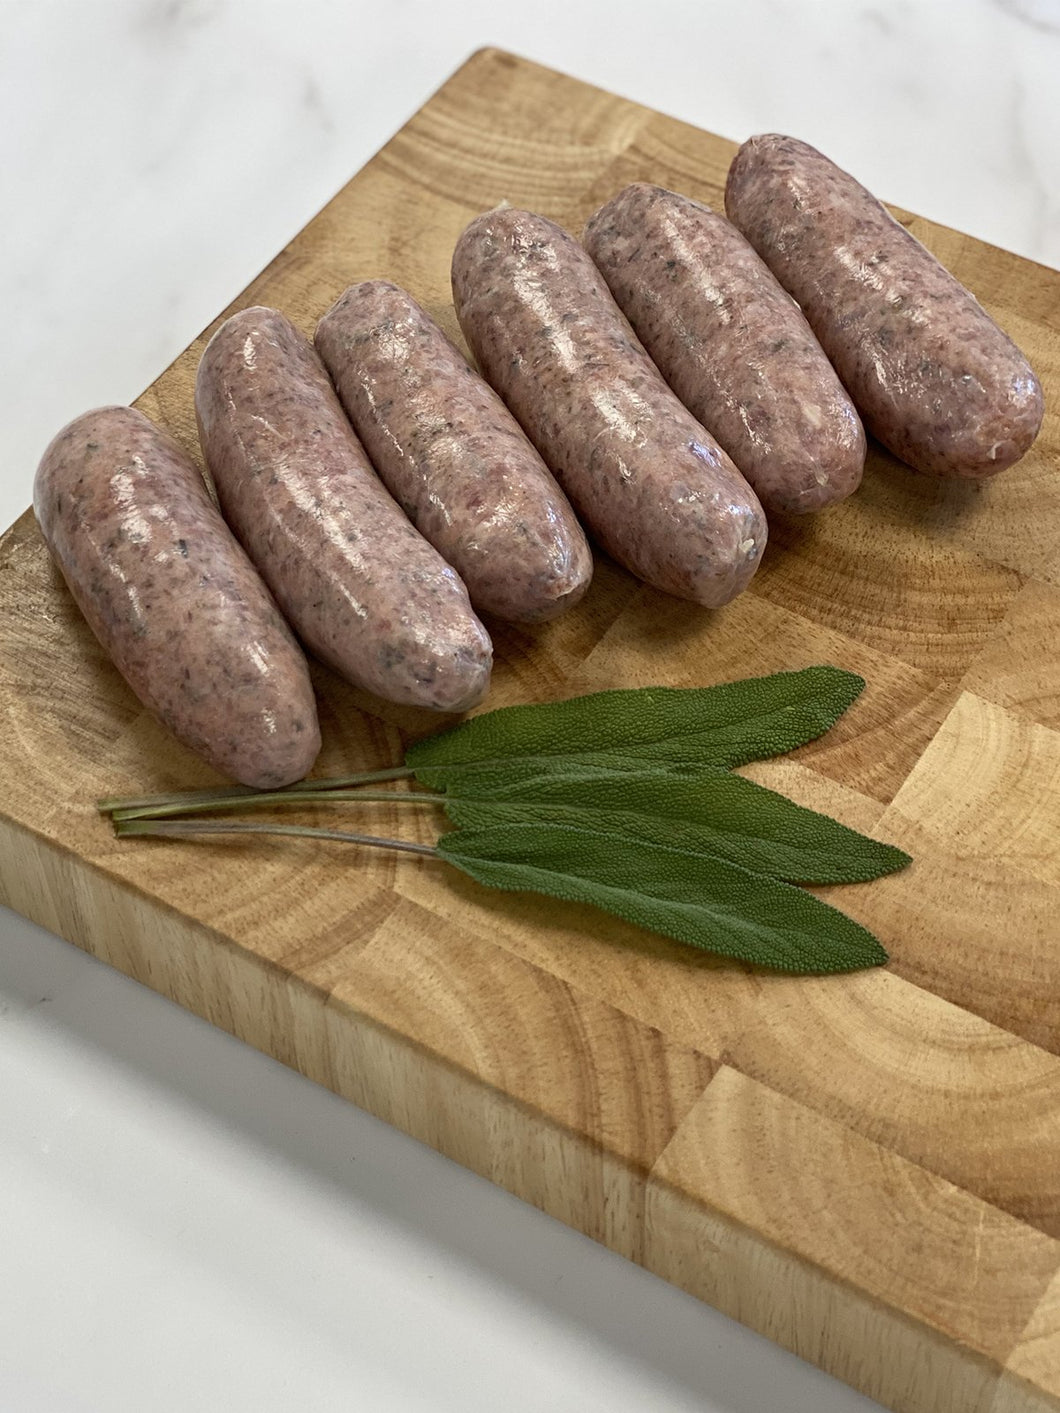 Cumberland sausages from Hill House Farm